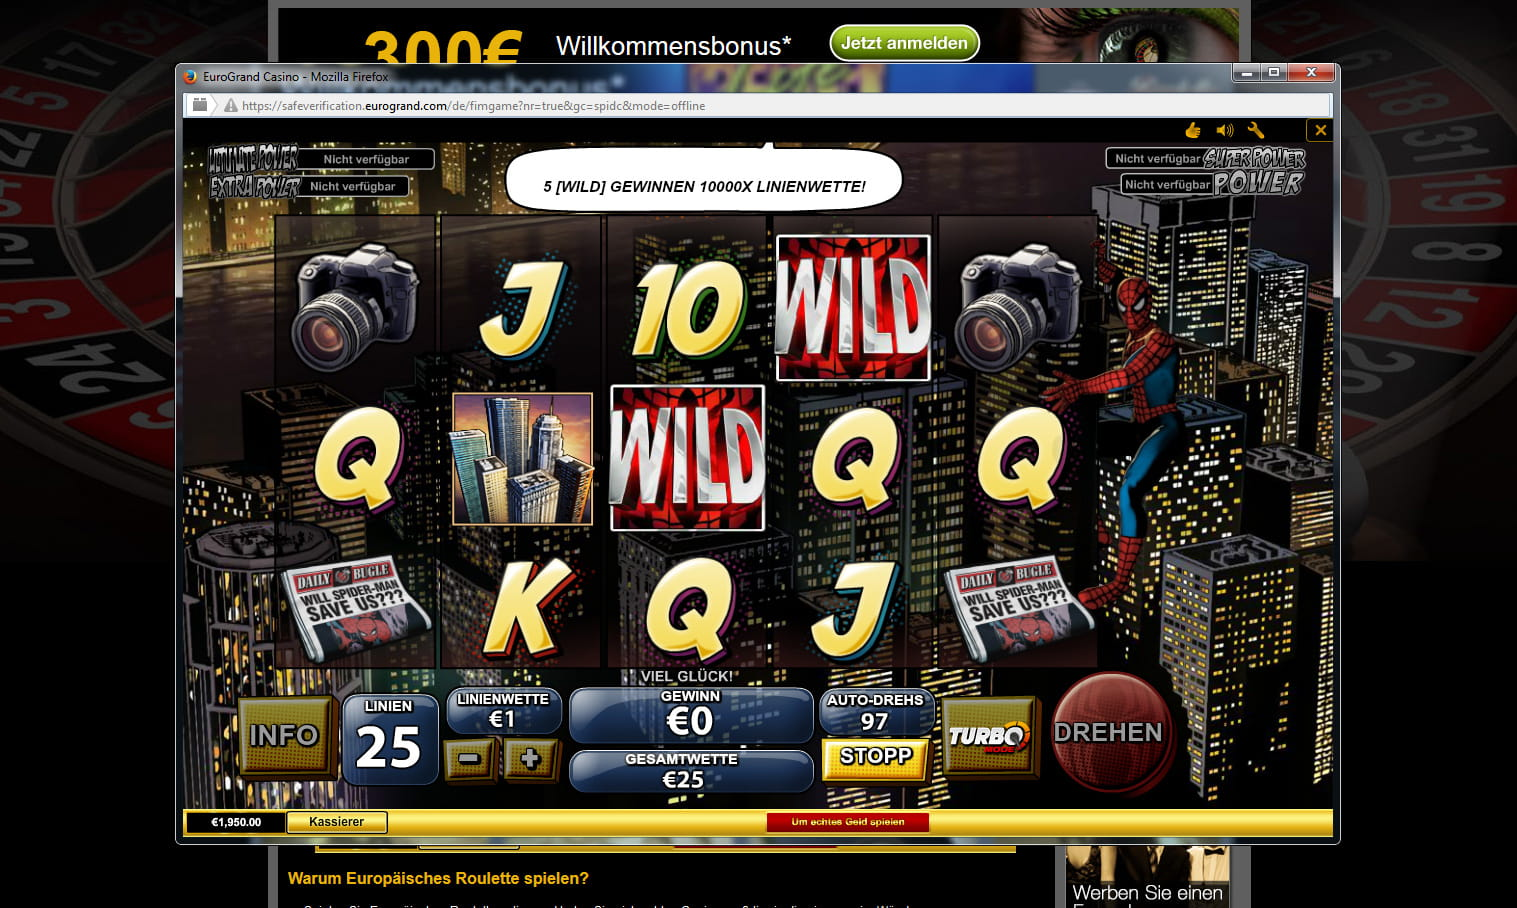 test online casino casino slot online english